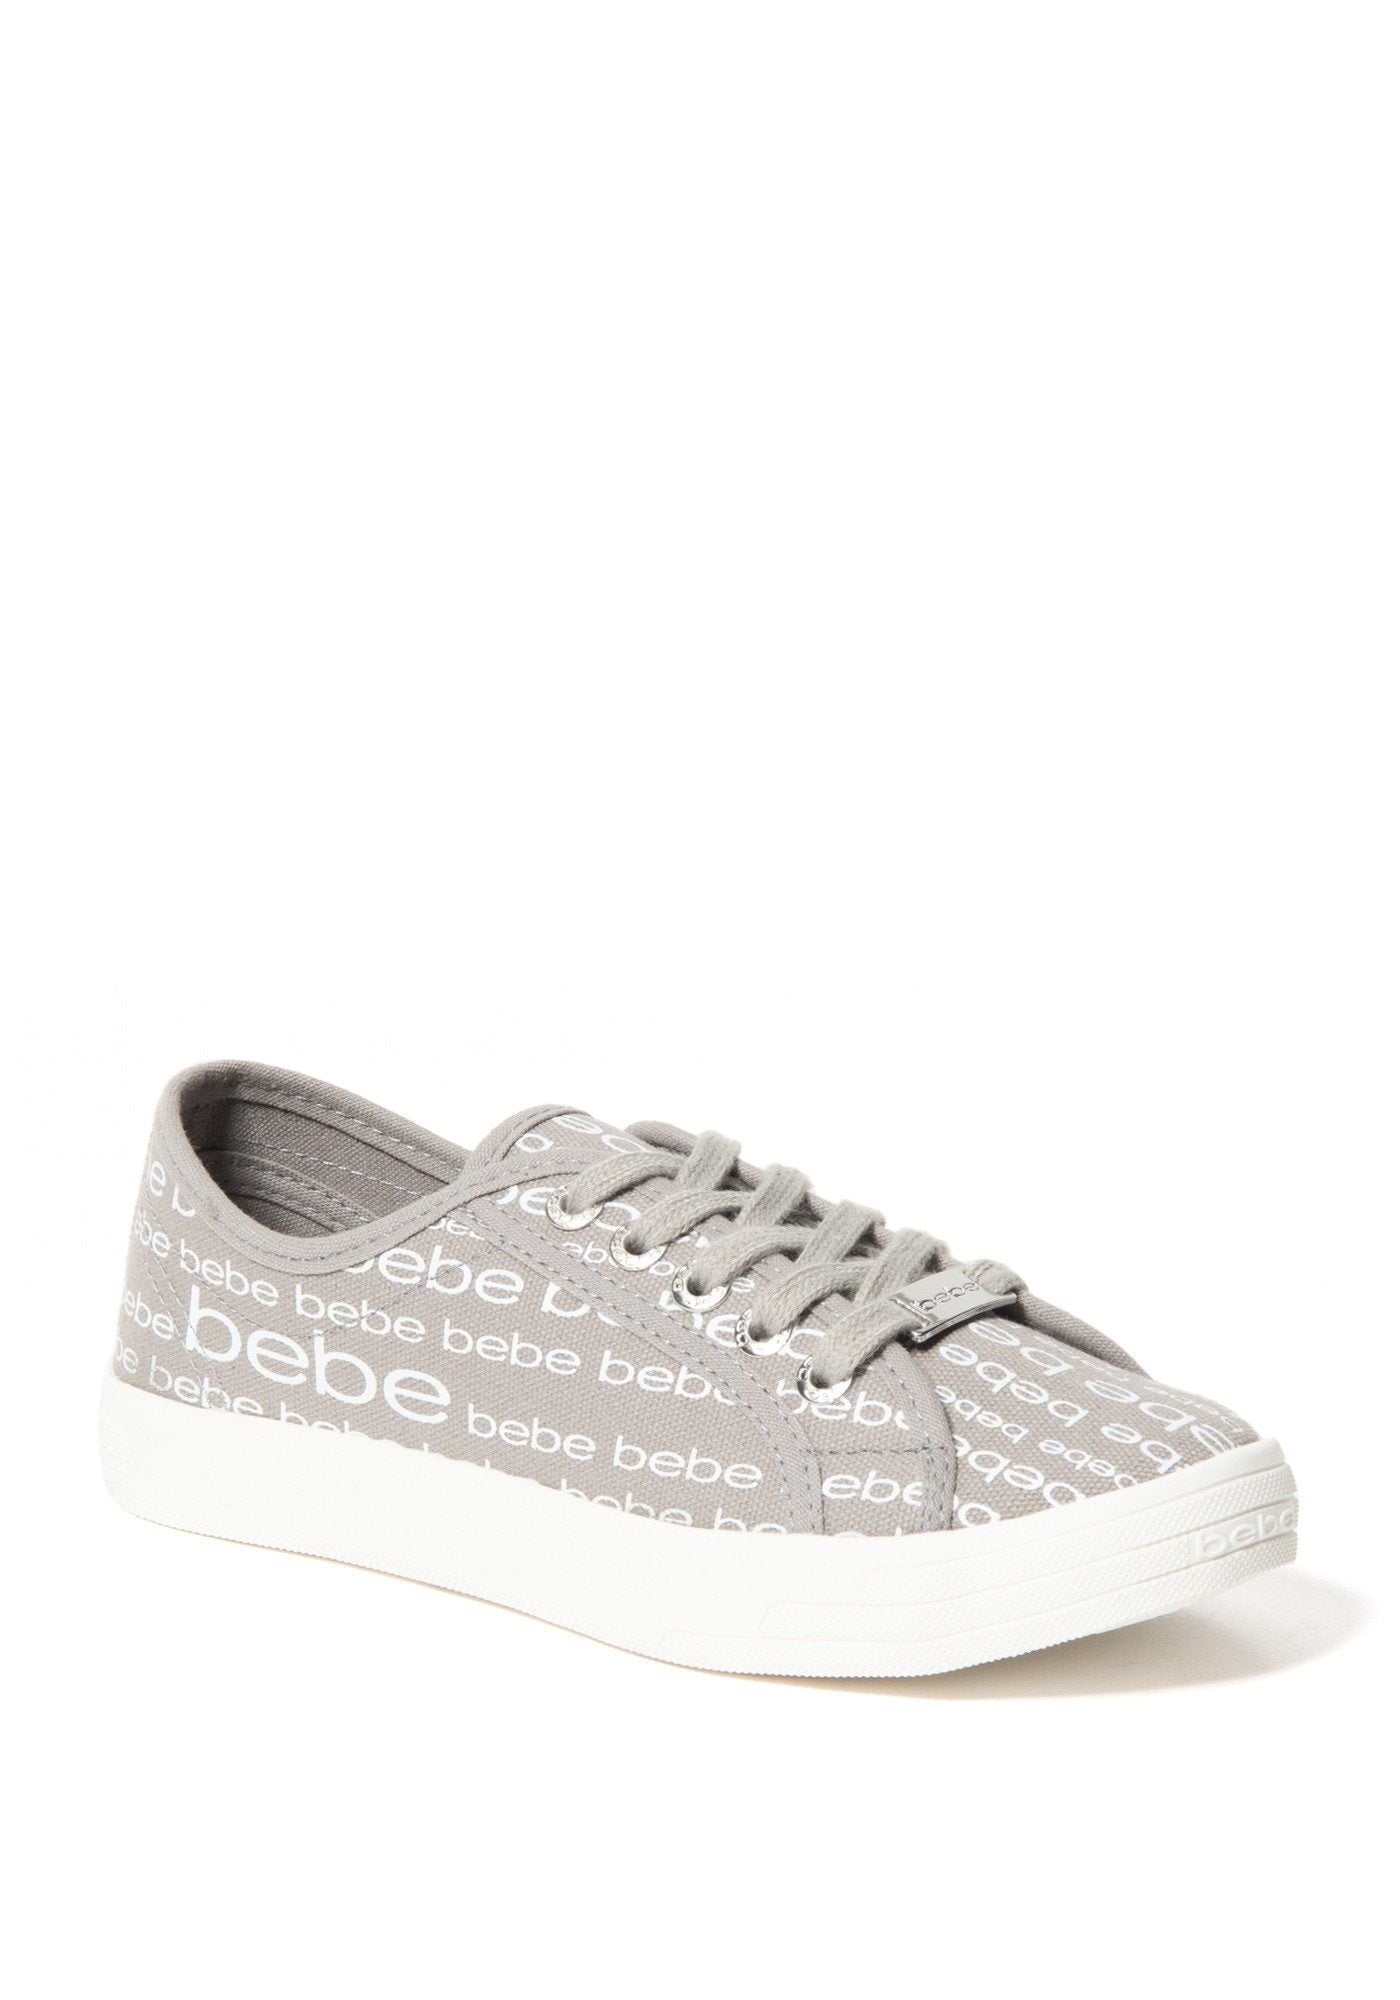 Bebe coupon: Bebe Women's Daylin Logo Sneakers, Size 8 in Grey Synthetic